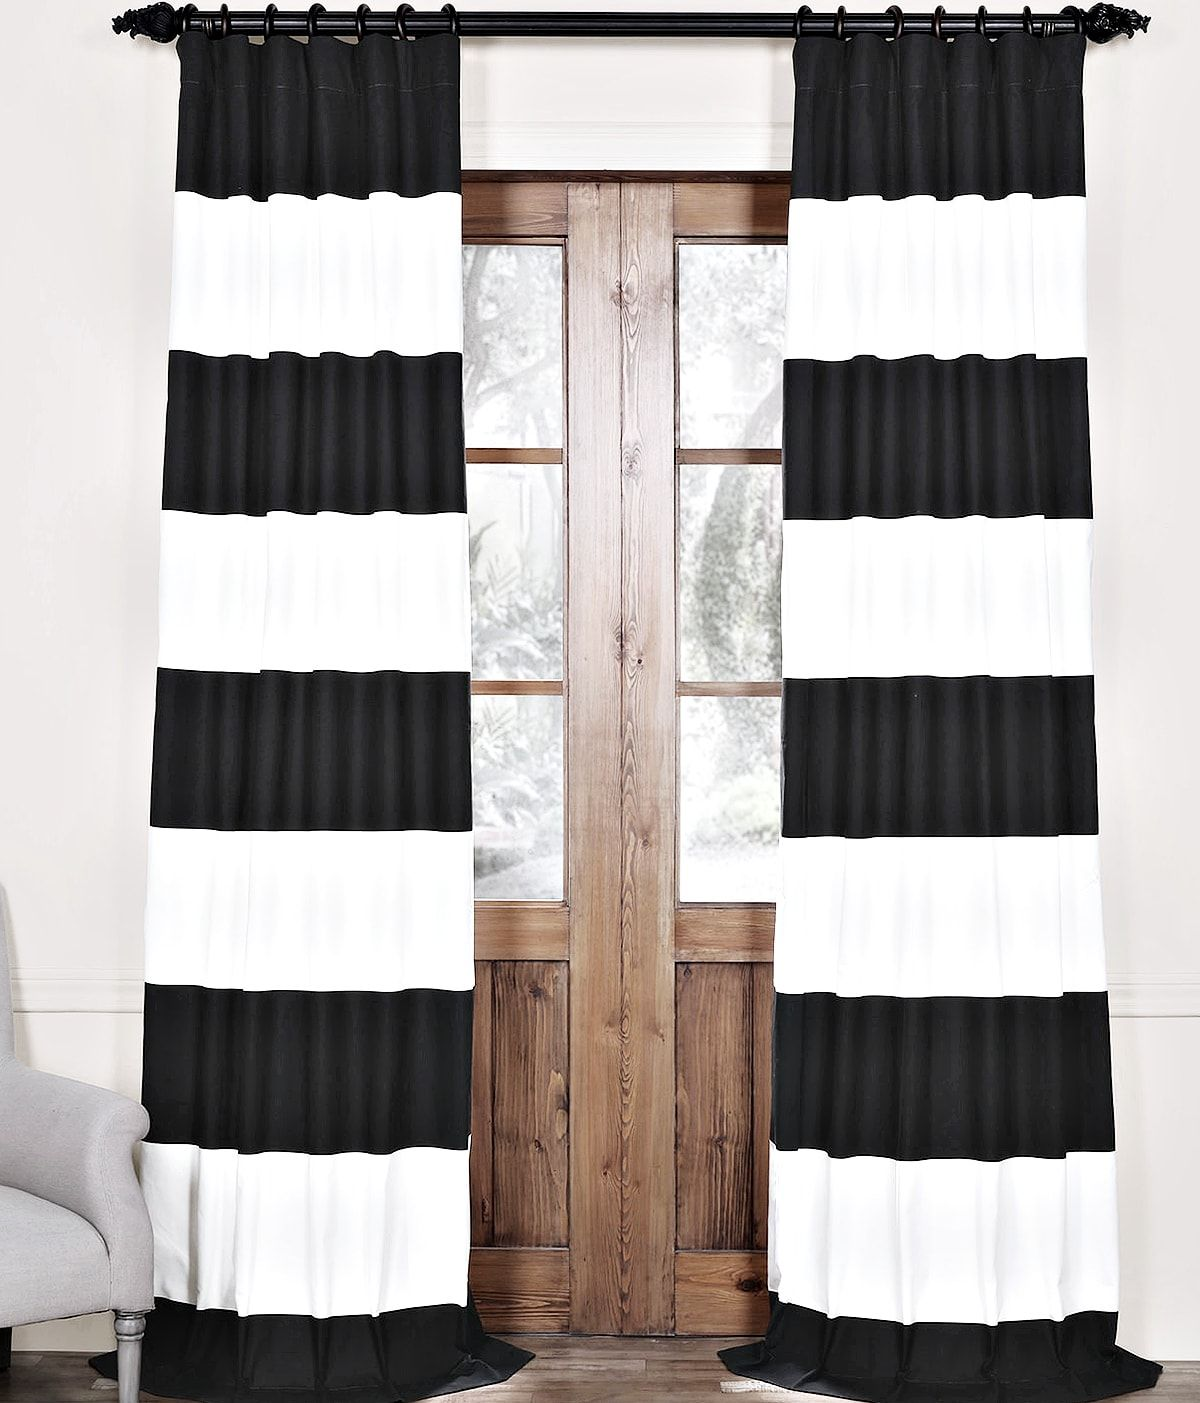 My Favorite Black And White Curtains Black White Curtains